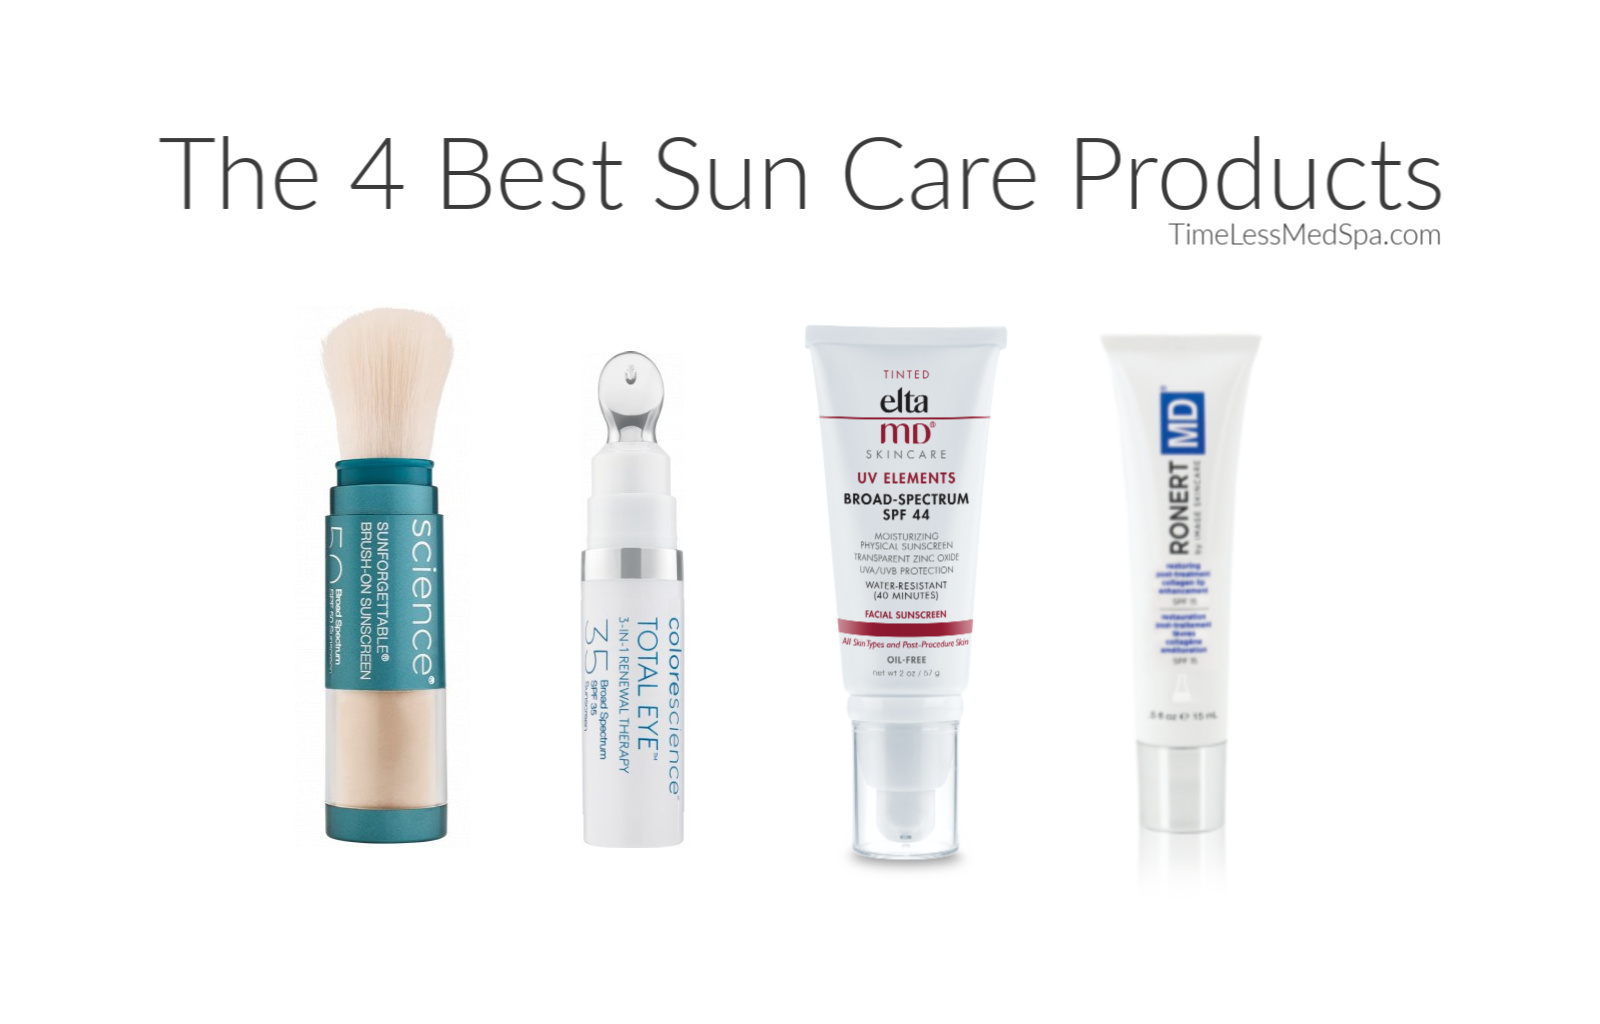 The 4 Best Sun Care Products